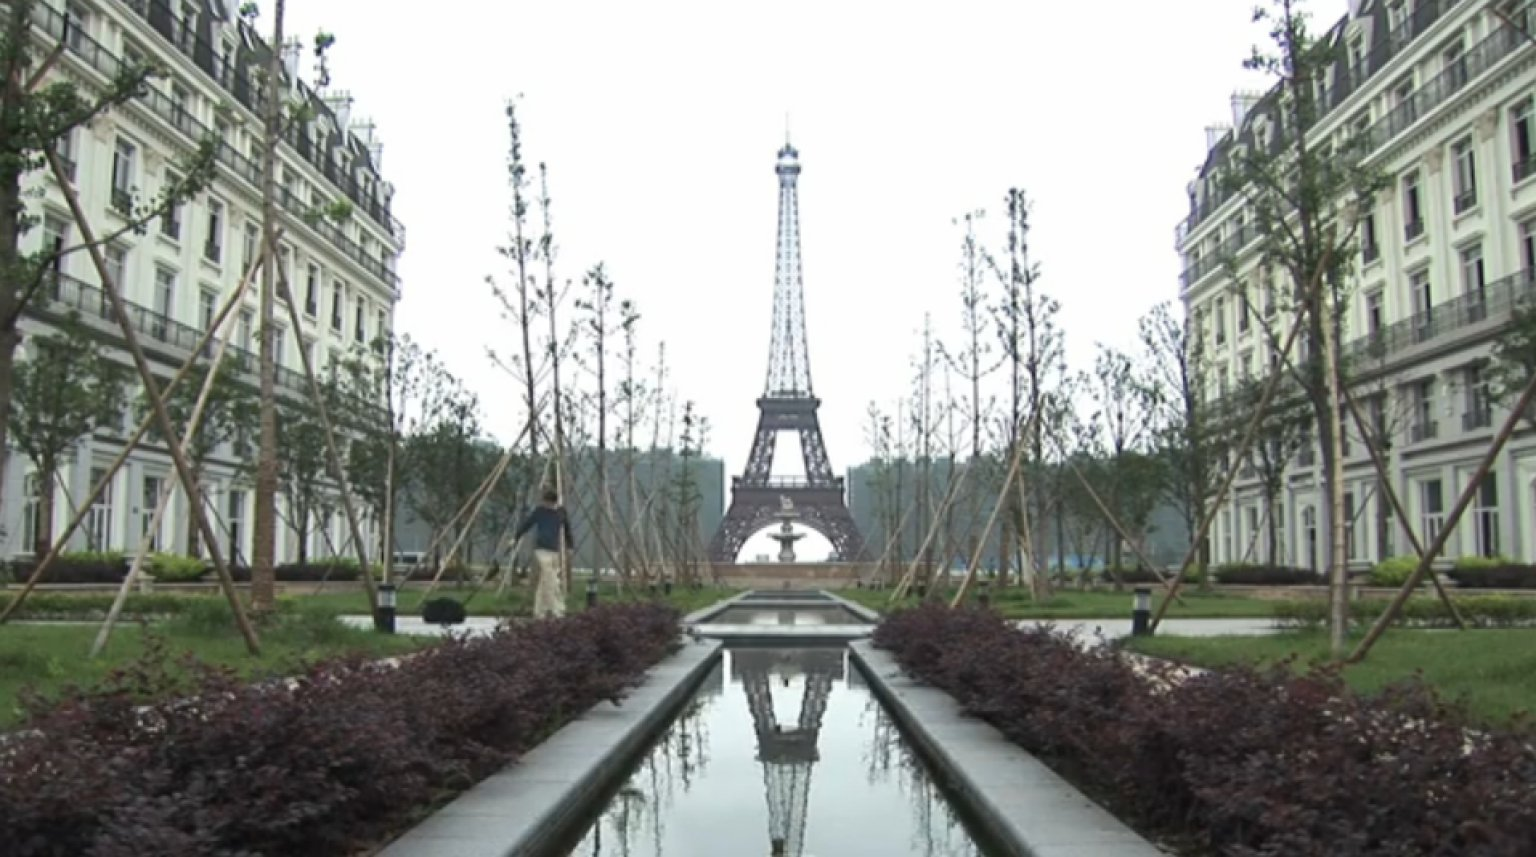 paris in china tianducheng is an eerie abandoned city of lights